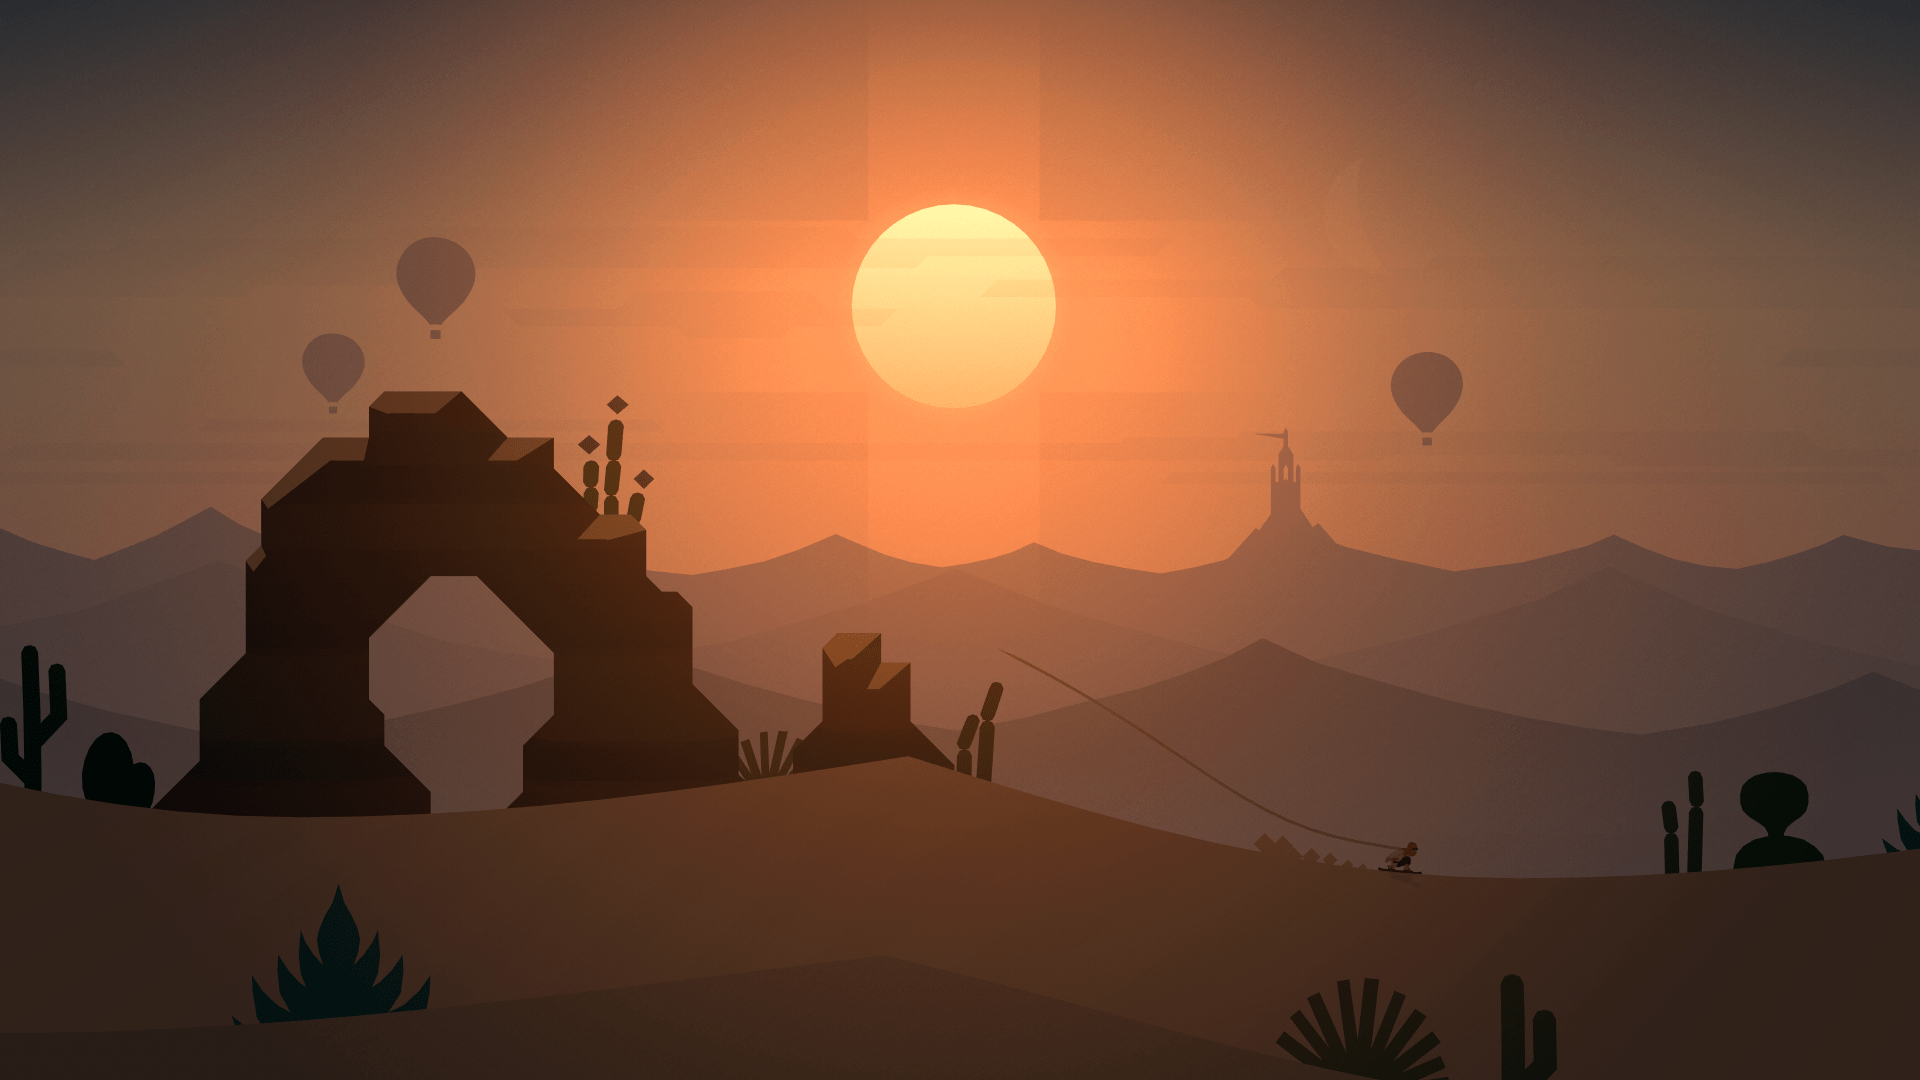 The Sequel To Alto S Adventure Arrives This Summer